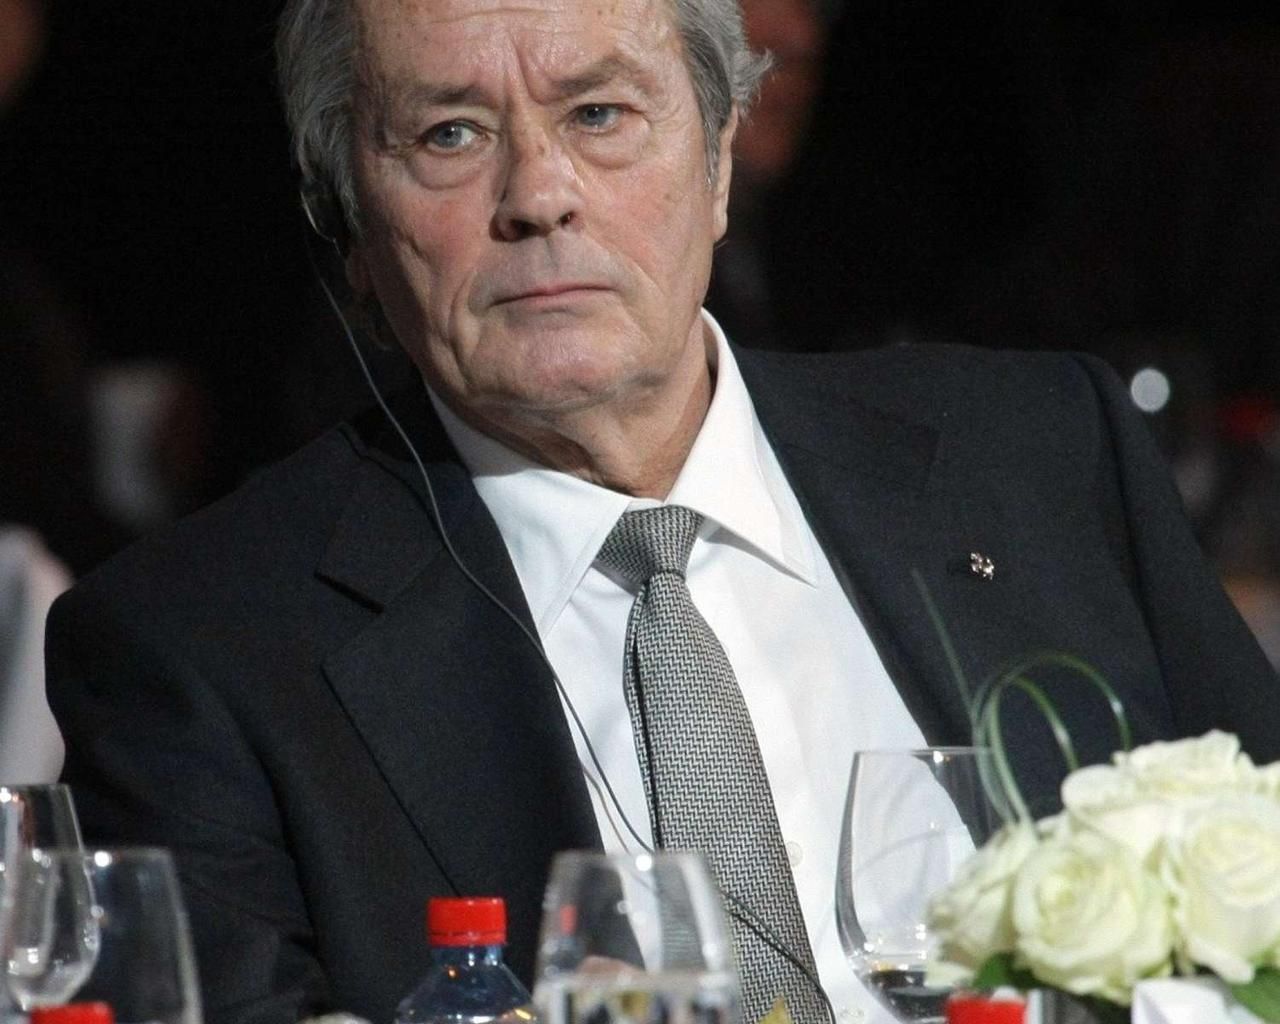 Hollywood Slams Cannes For Honoring Alain Delon – Is That Right?